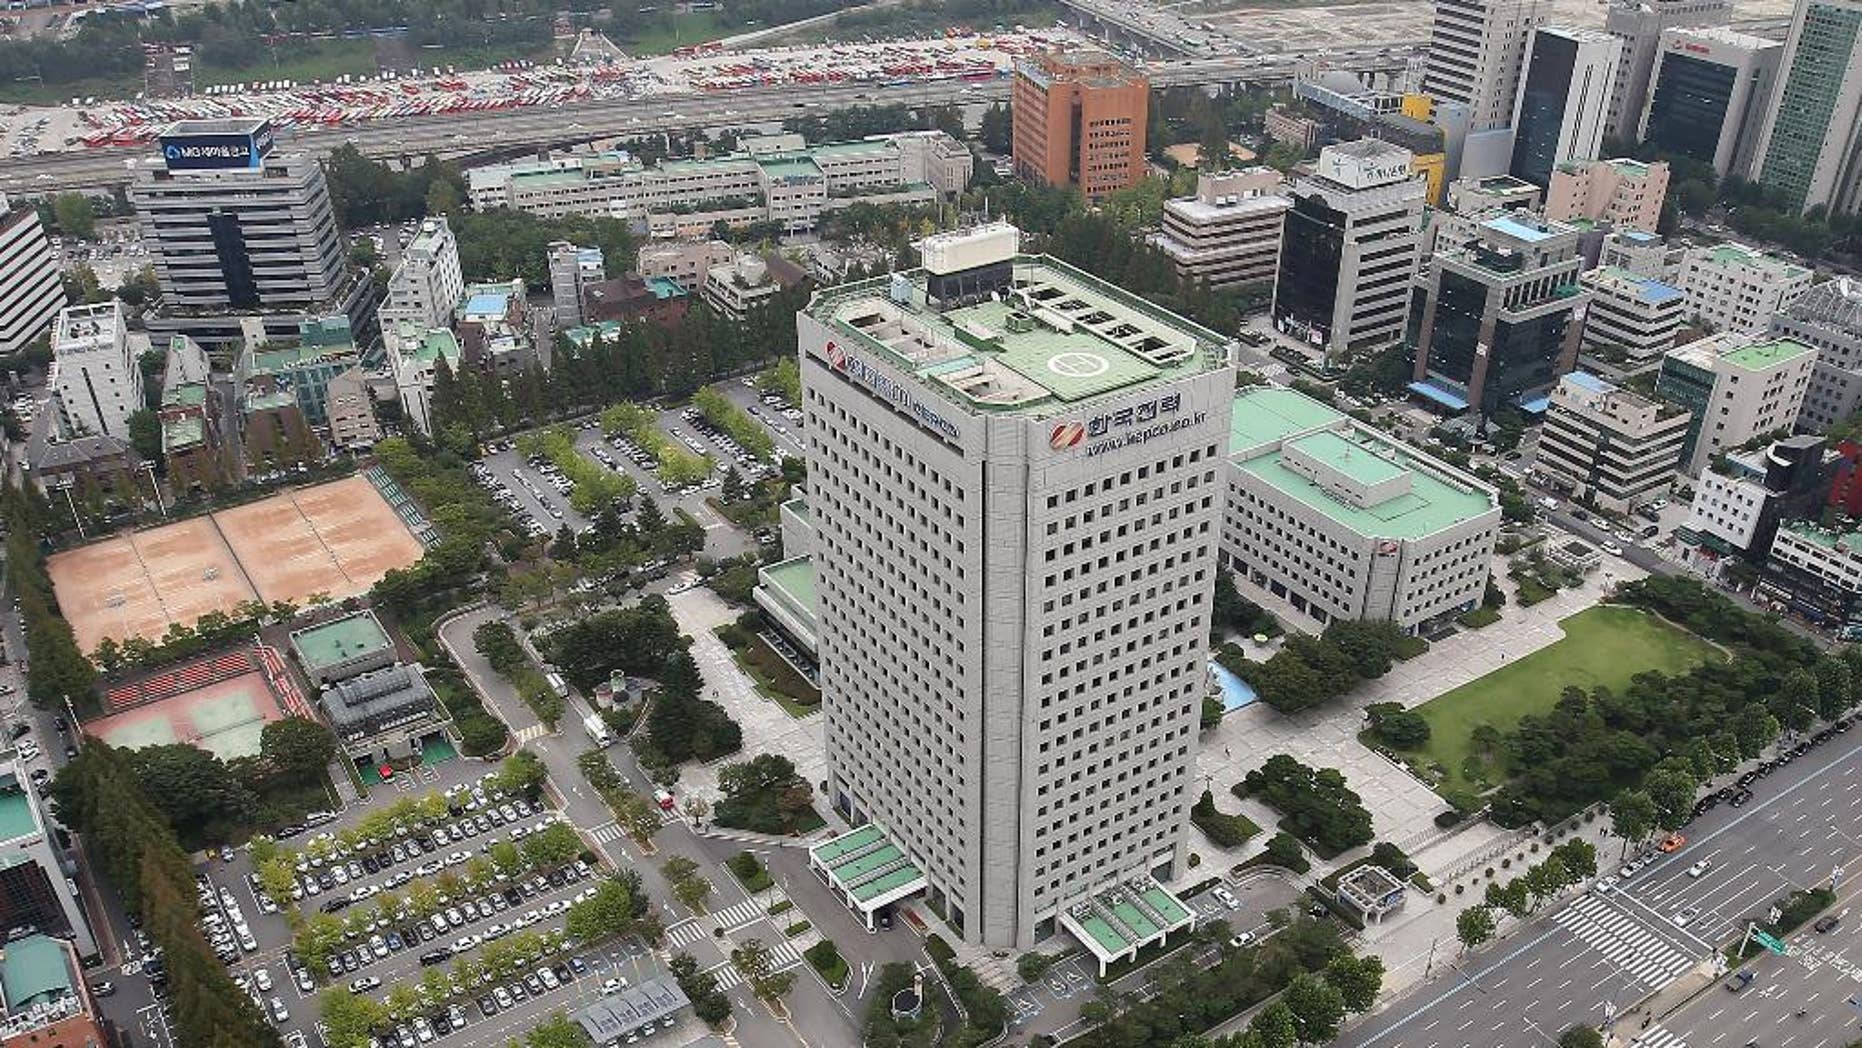 This Sept. 17, 2014 photo, shows Korea Electric Power Corp's headquarters, center, in Seoul, South Korea. The consortium led by Hyundai Motor Co. offered 10.55 trillion won ($10.1 billion) for land in Seoul's tony Gangnam district where it will build a new headquarters, on Thursday, Sept. 18, 2014. (AP Photo/Yonhap, Han Jong-chan) KOREA OUT